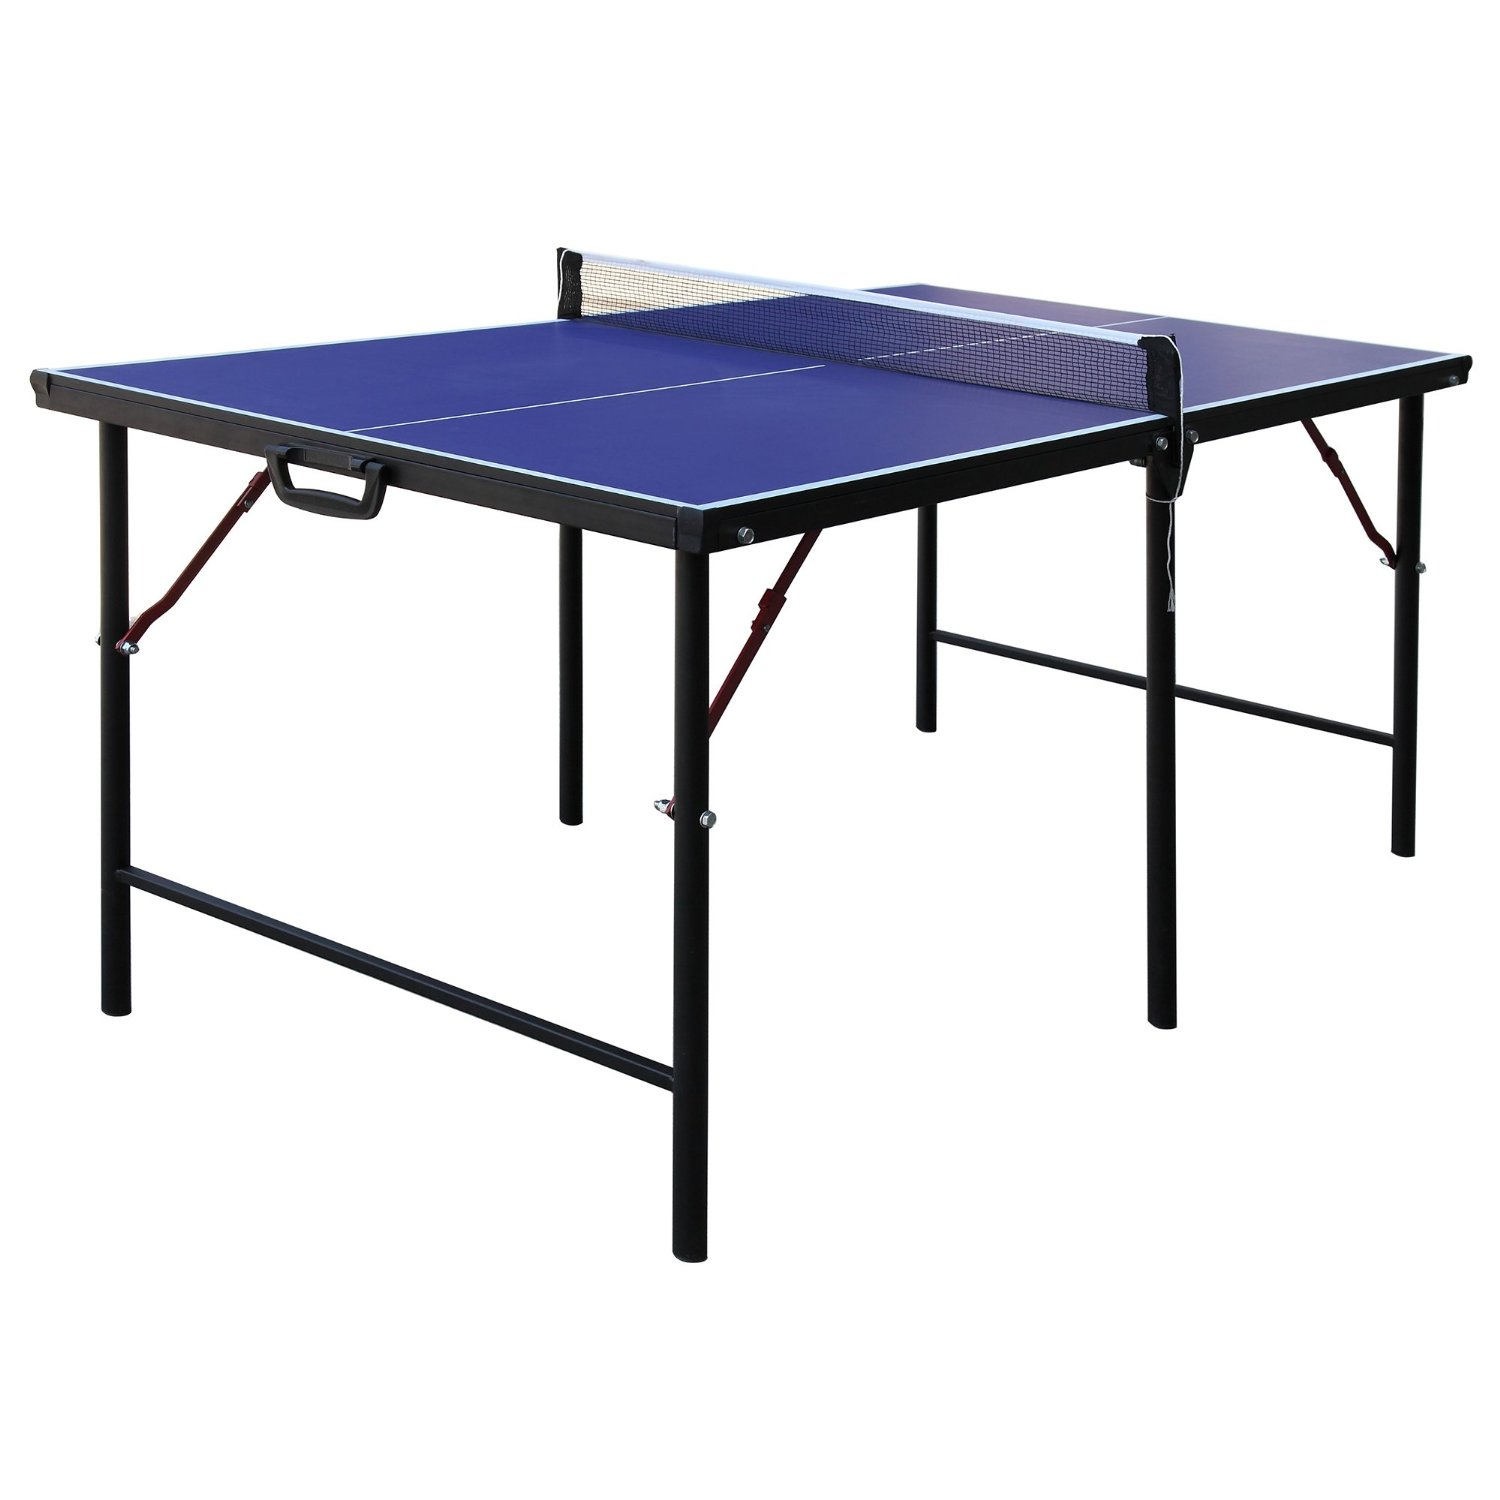 sc 1 st  A Table Tennis Racket & Top 5 Best Cheap Ping Pong Tables With Quality - Buying Guide [2018]